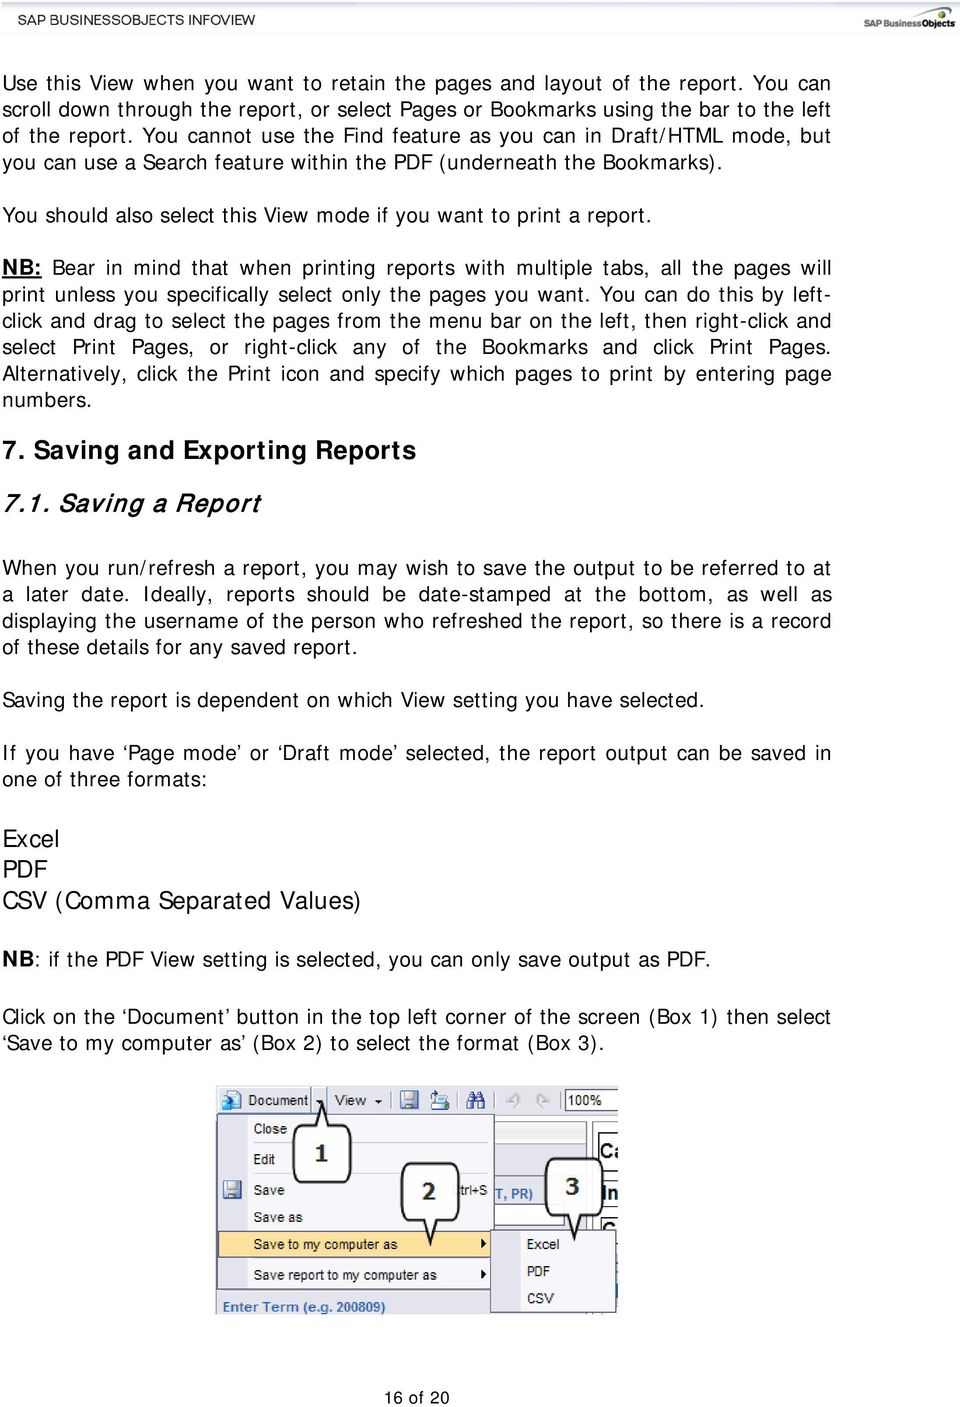 You should also select this View mode if you want to print a report.